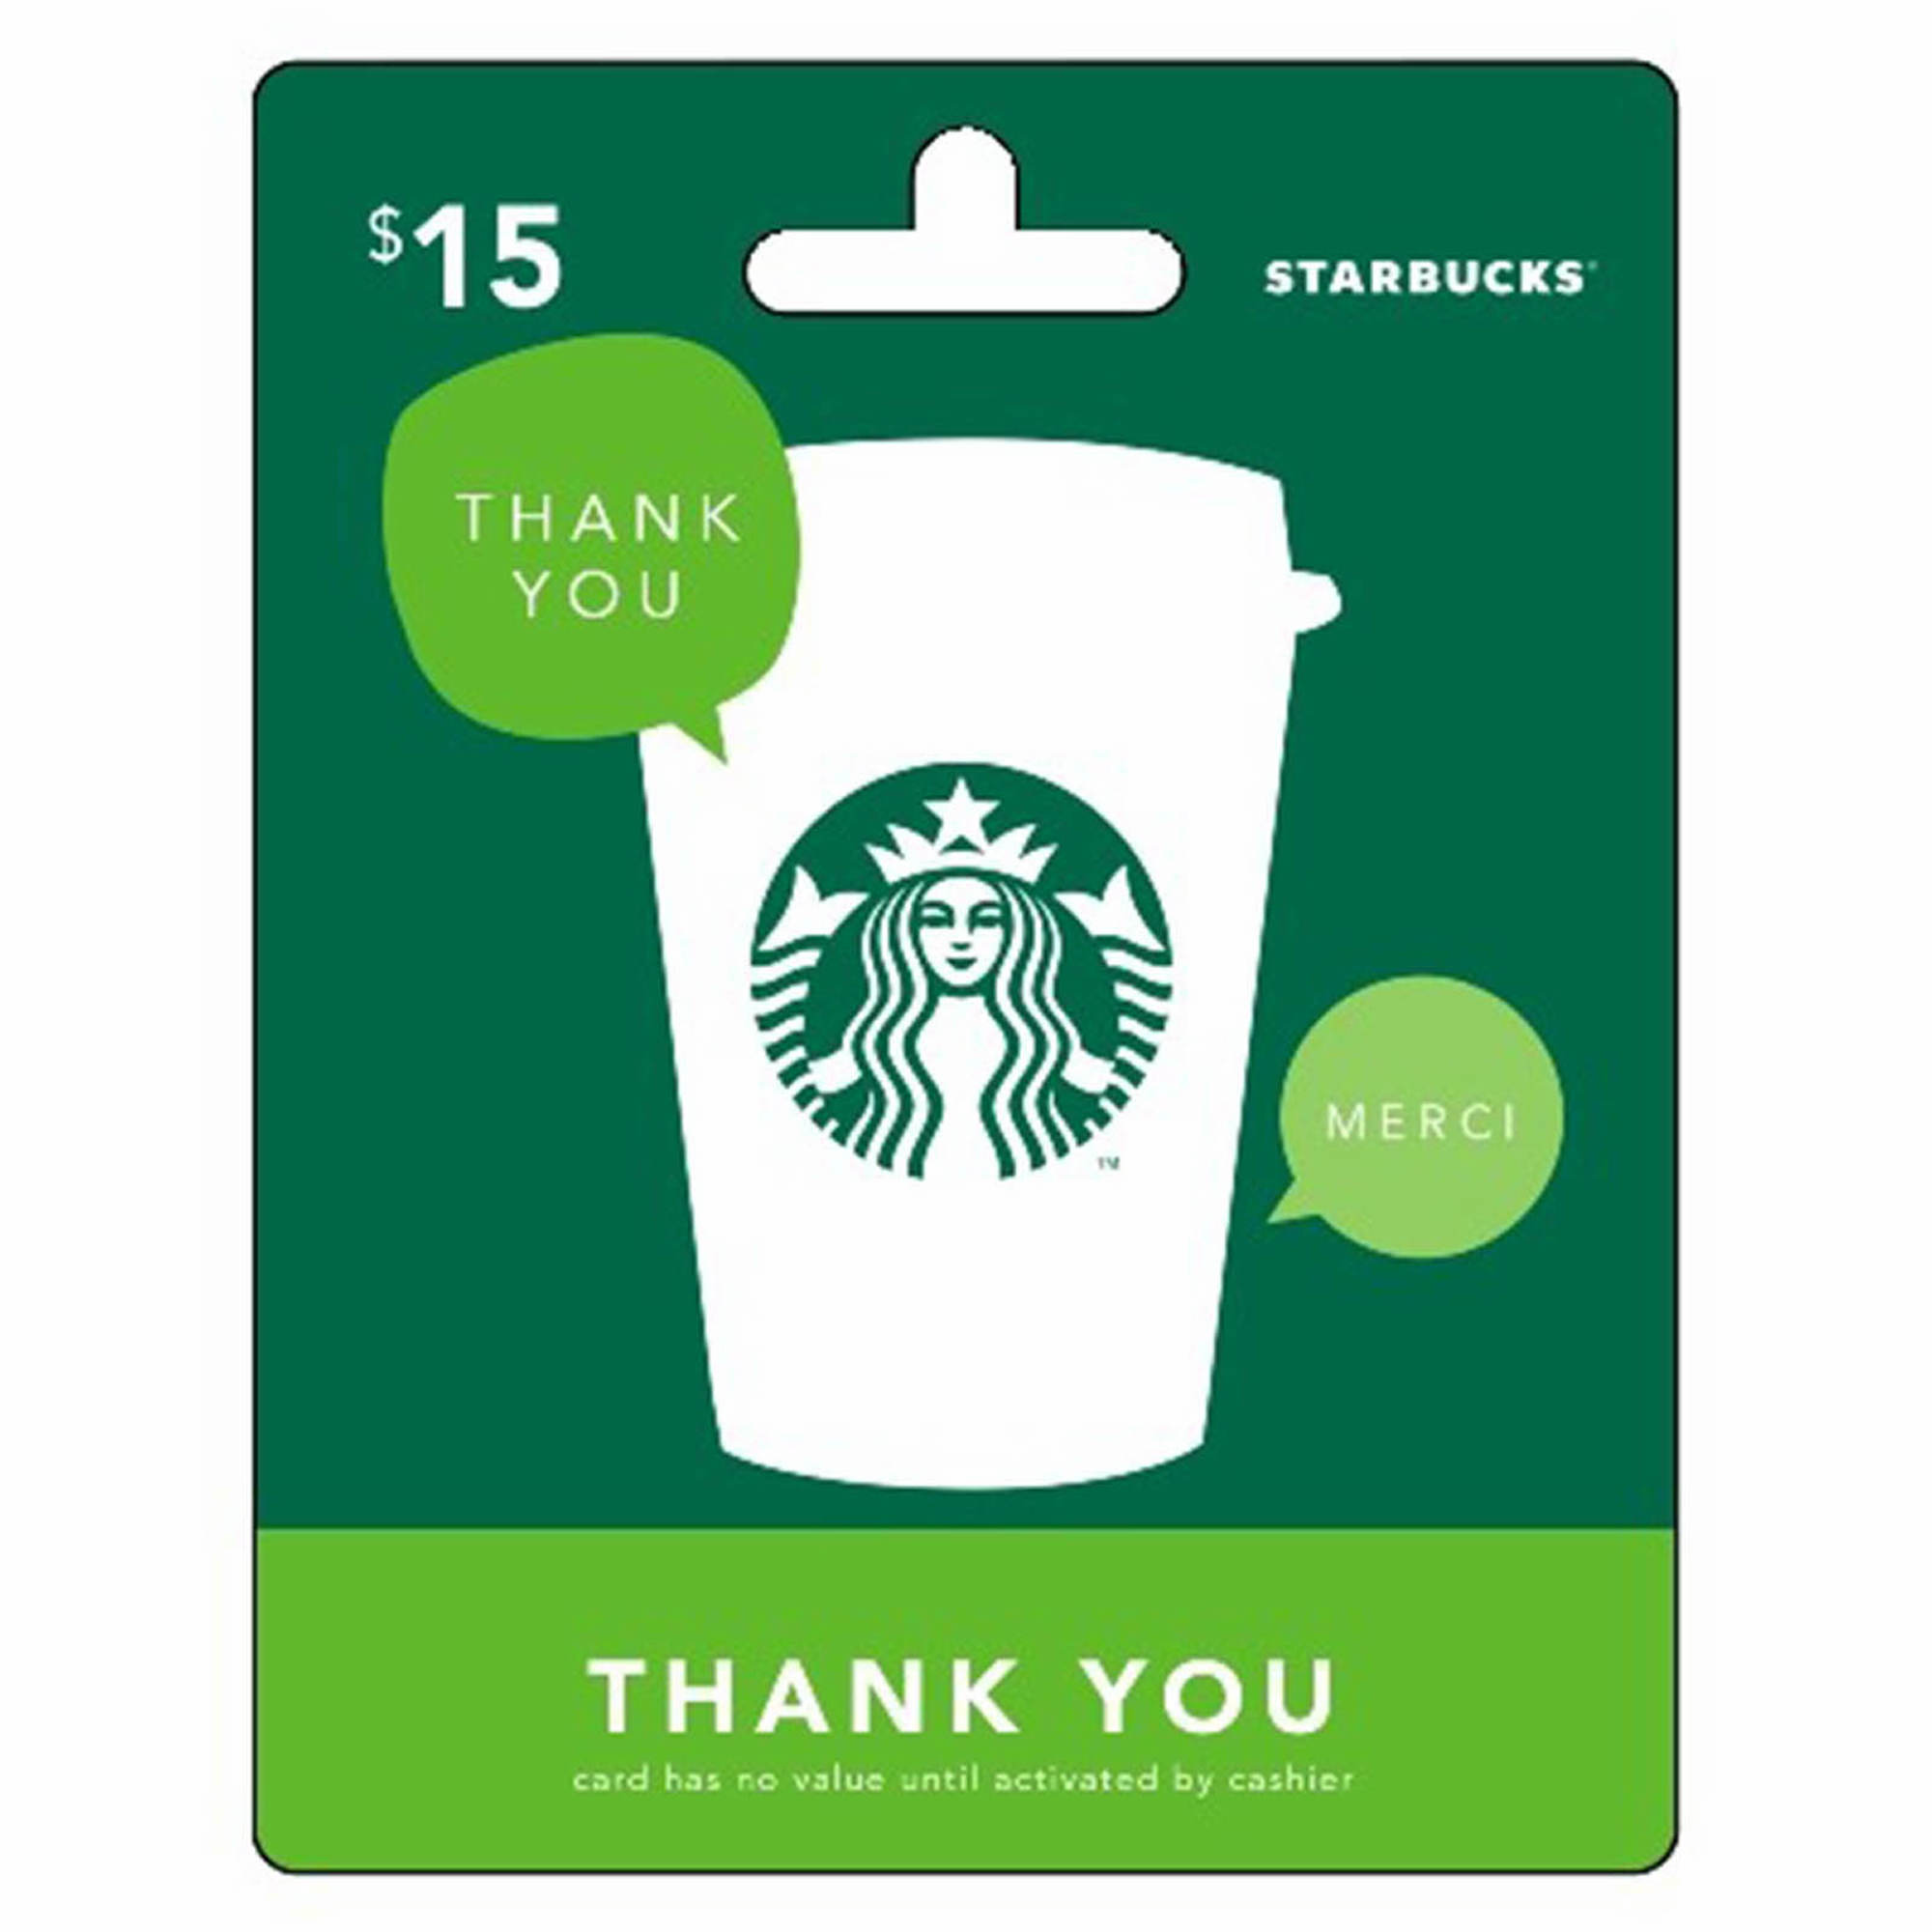 15 Starbucks Gift Card Thank You Bjs Wholesale Club